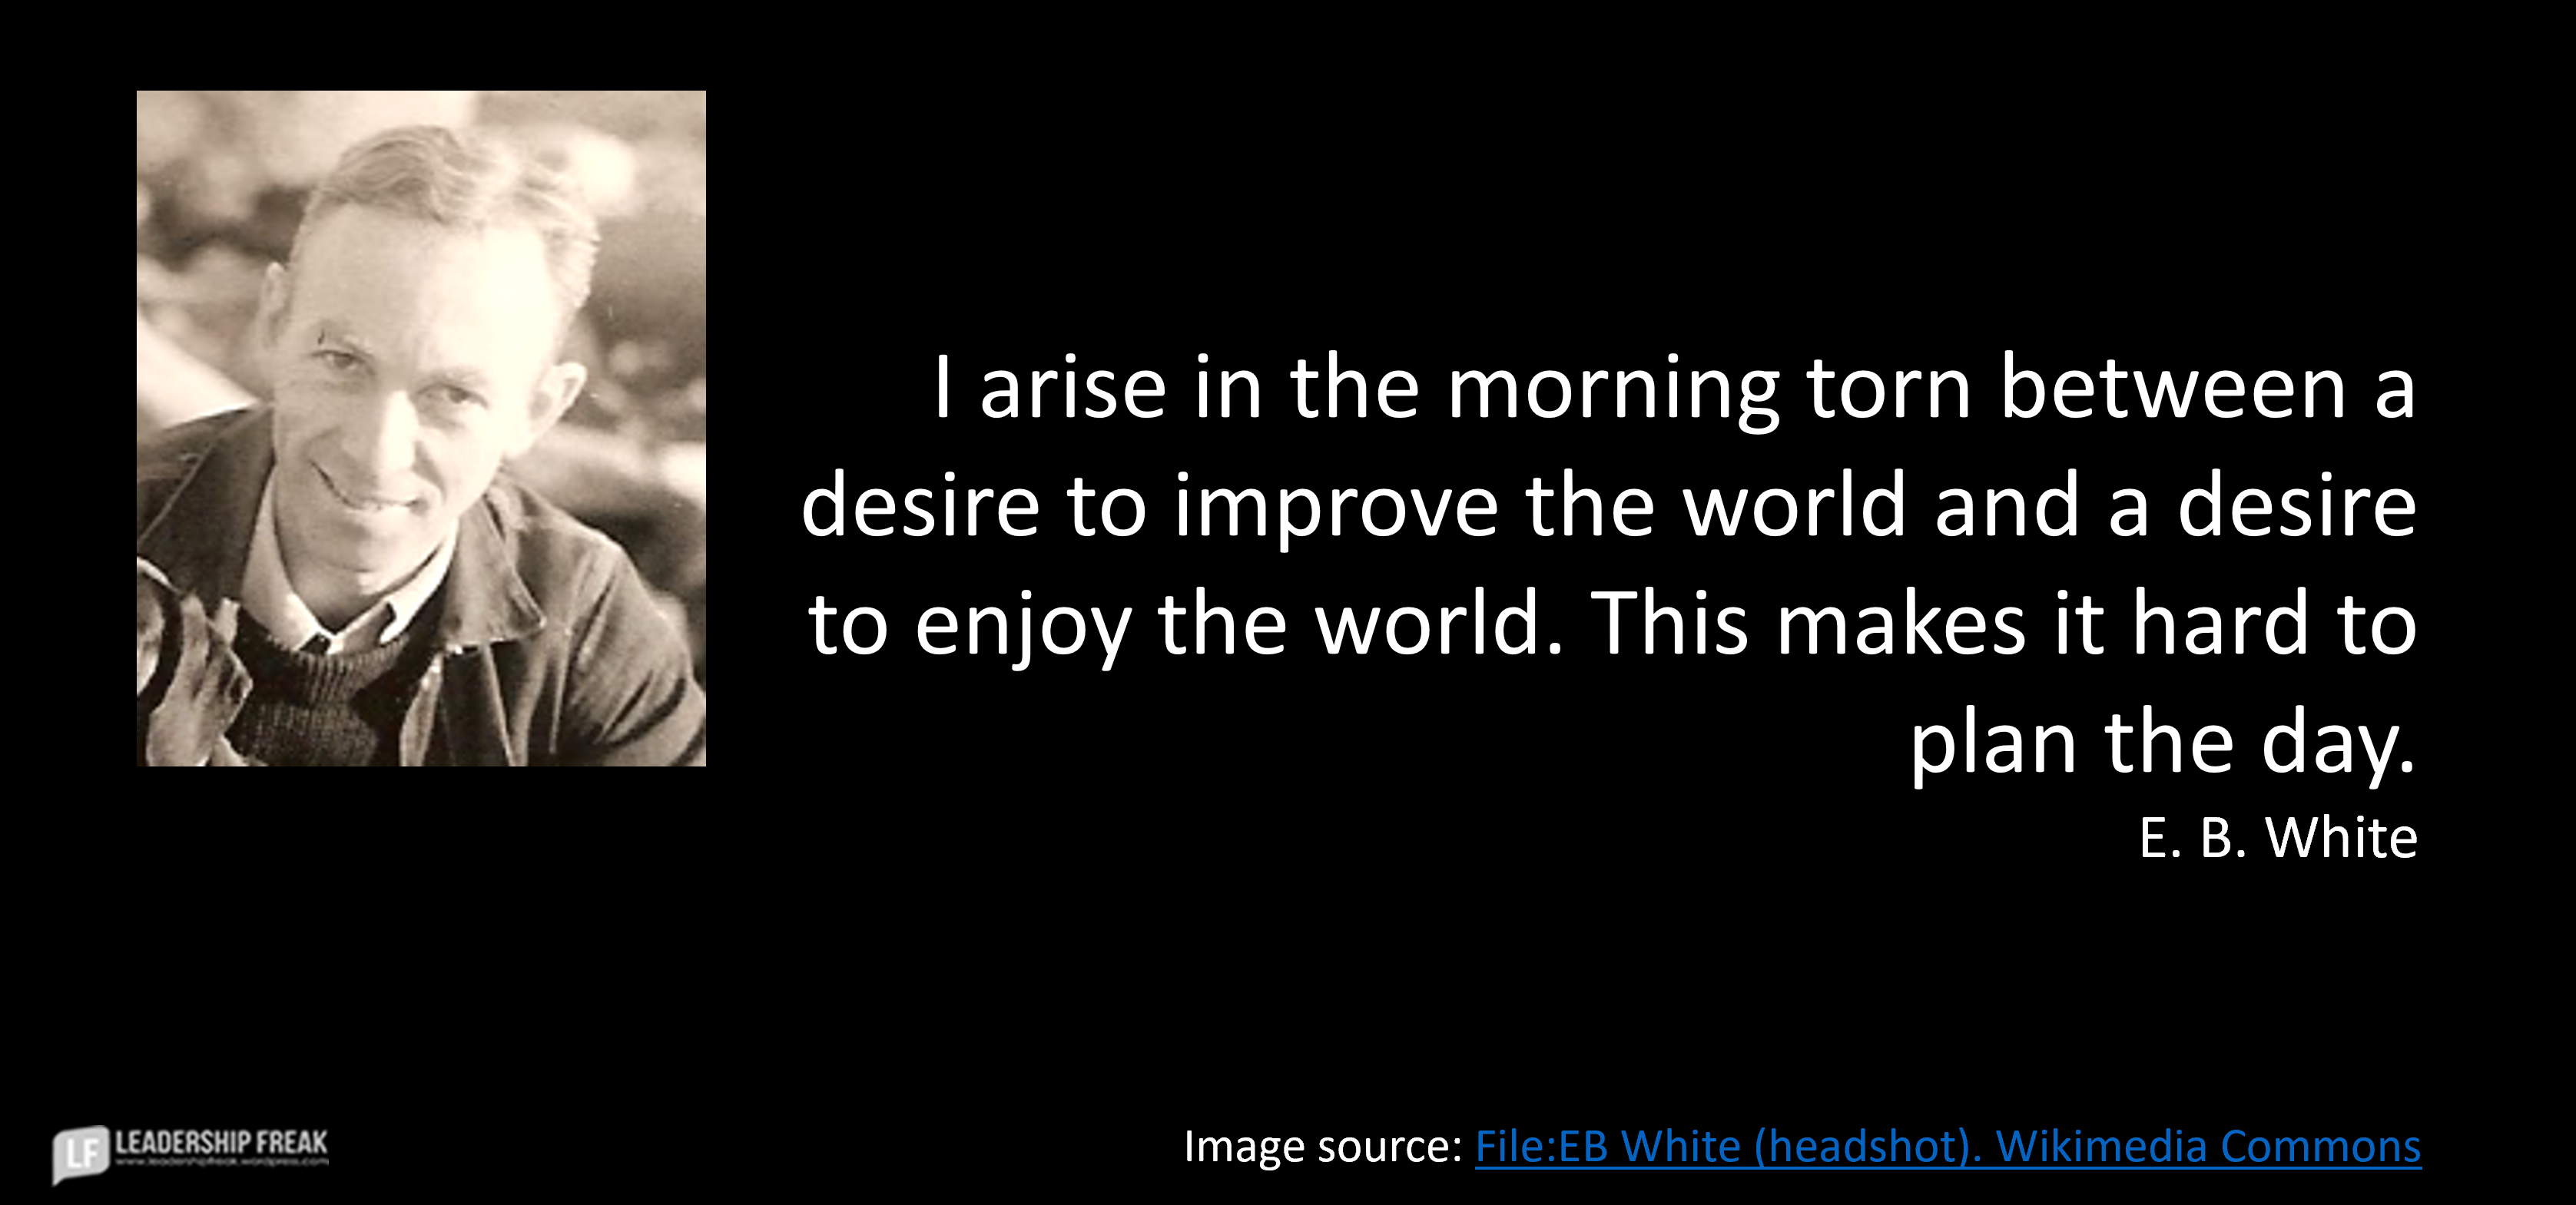 """Image of E. B. White.  """"I arise in the morning torn between a desire to improve the world and a desire to enjoy the world. This makes it hard to plan the day."""""""